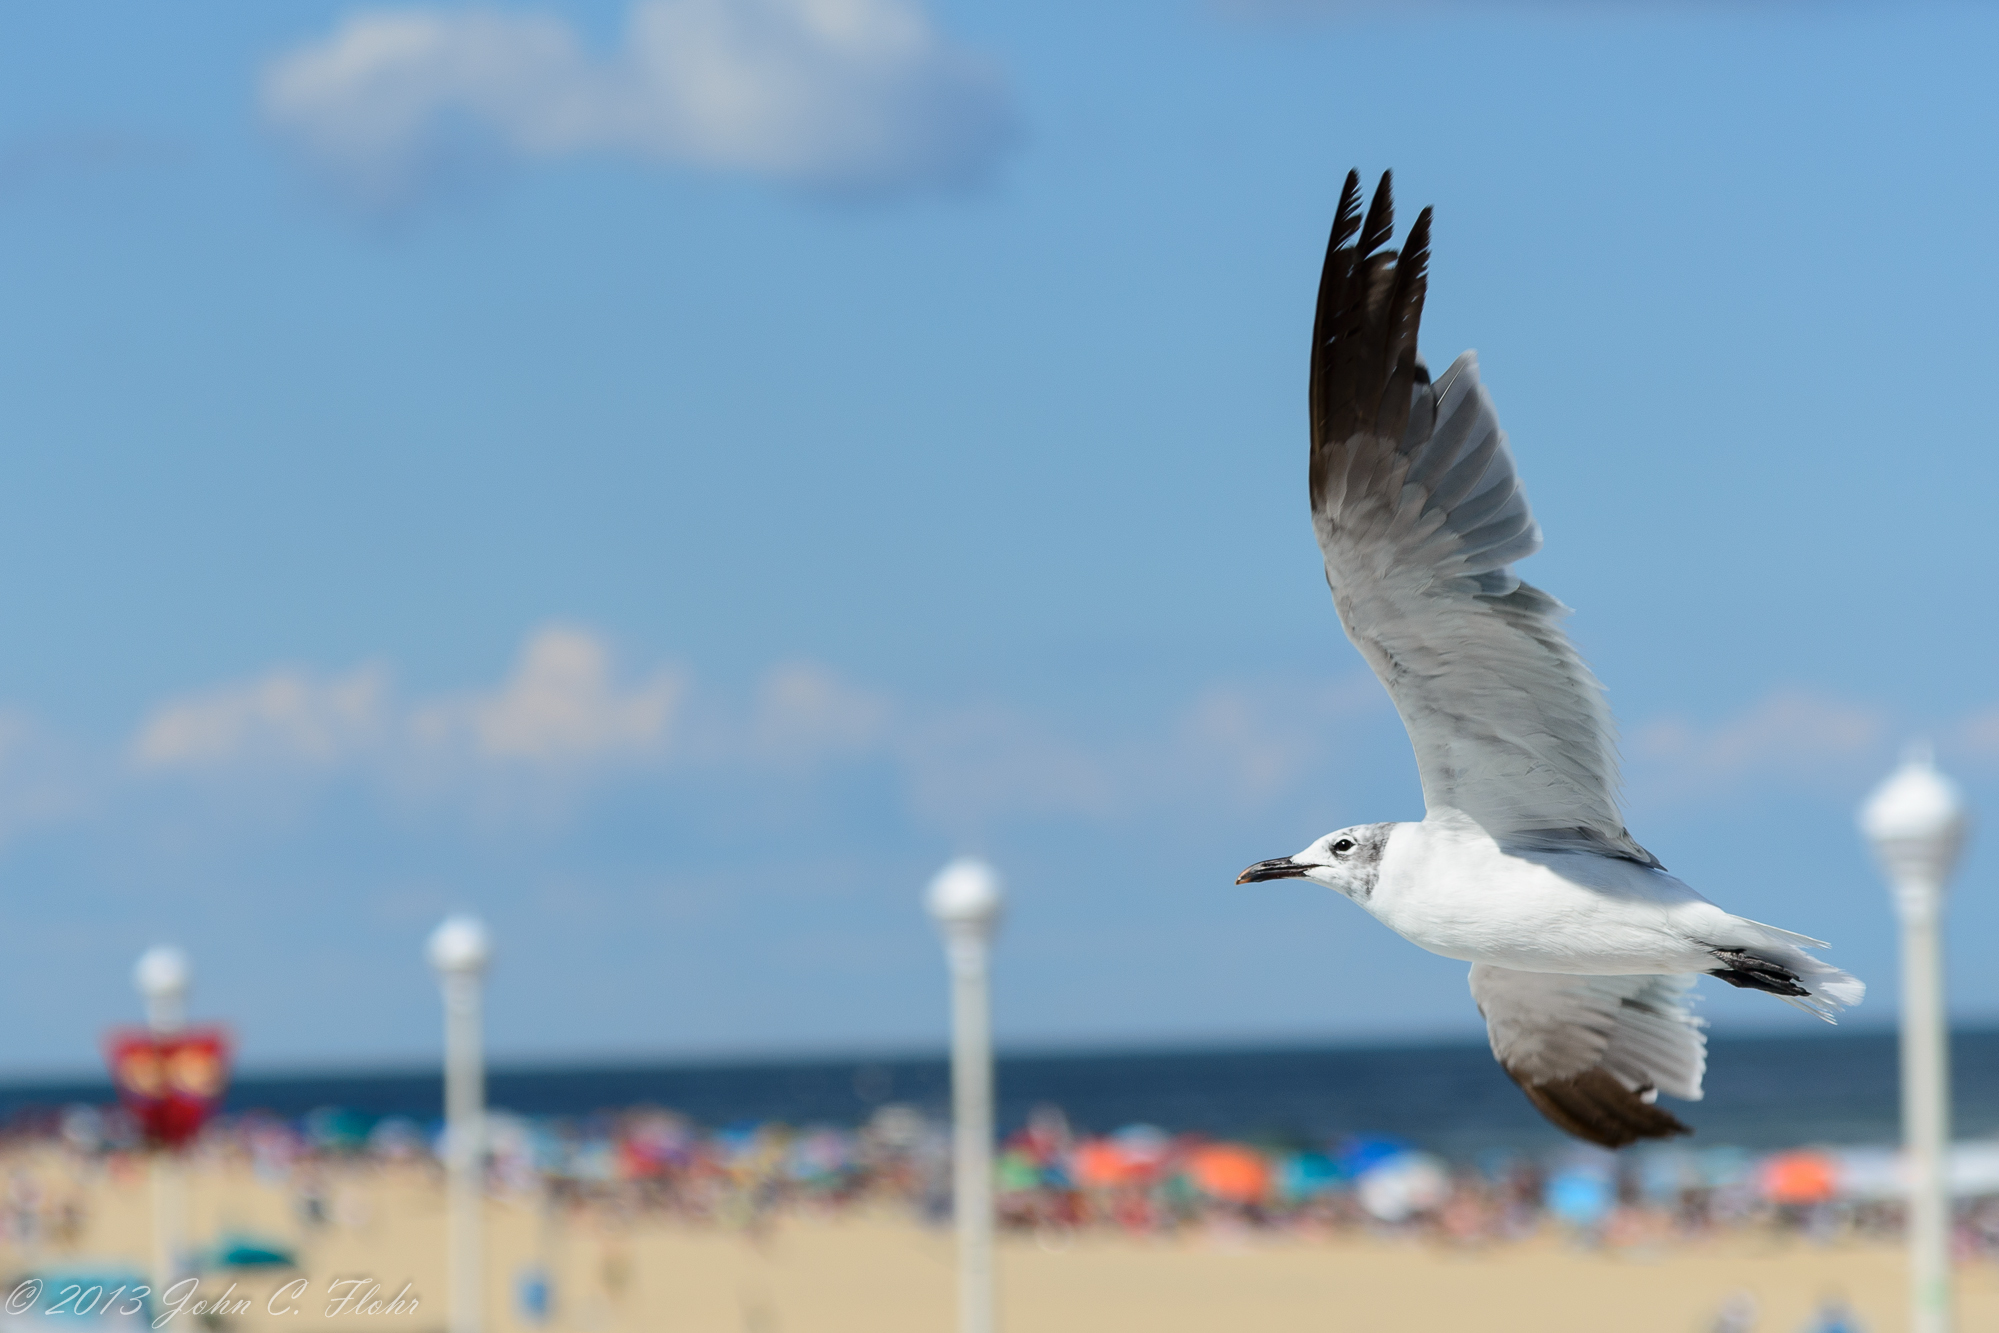 Ocean City Seagull, Ocean City, MD USA